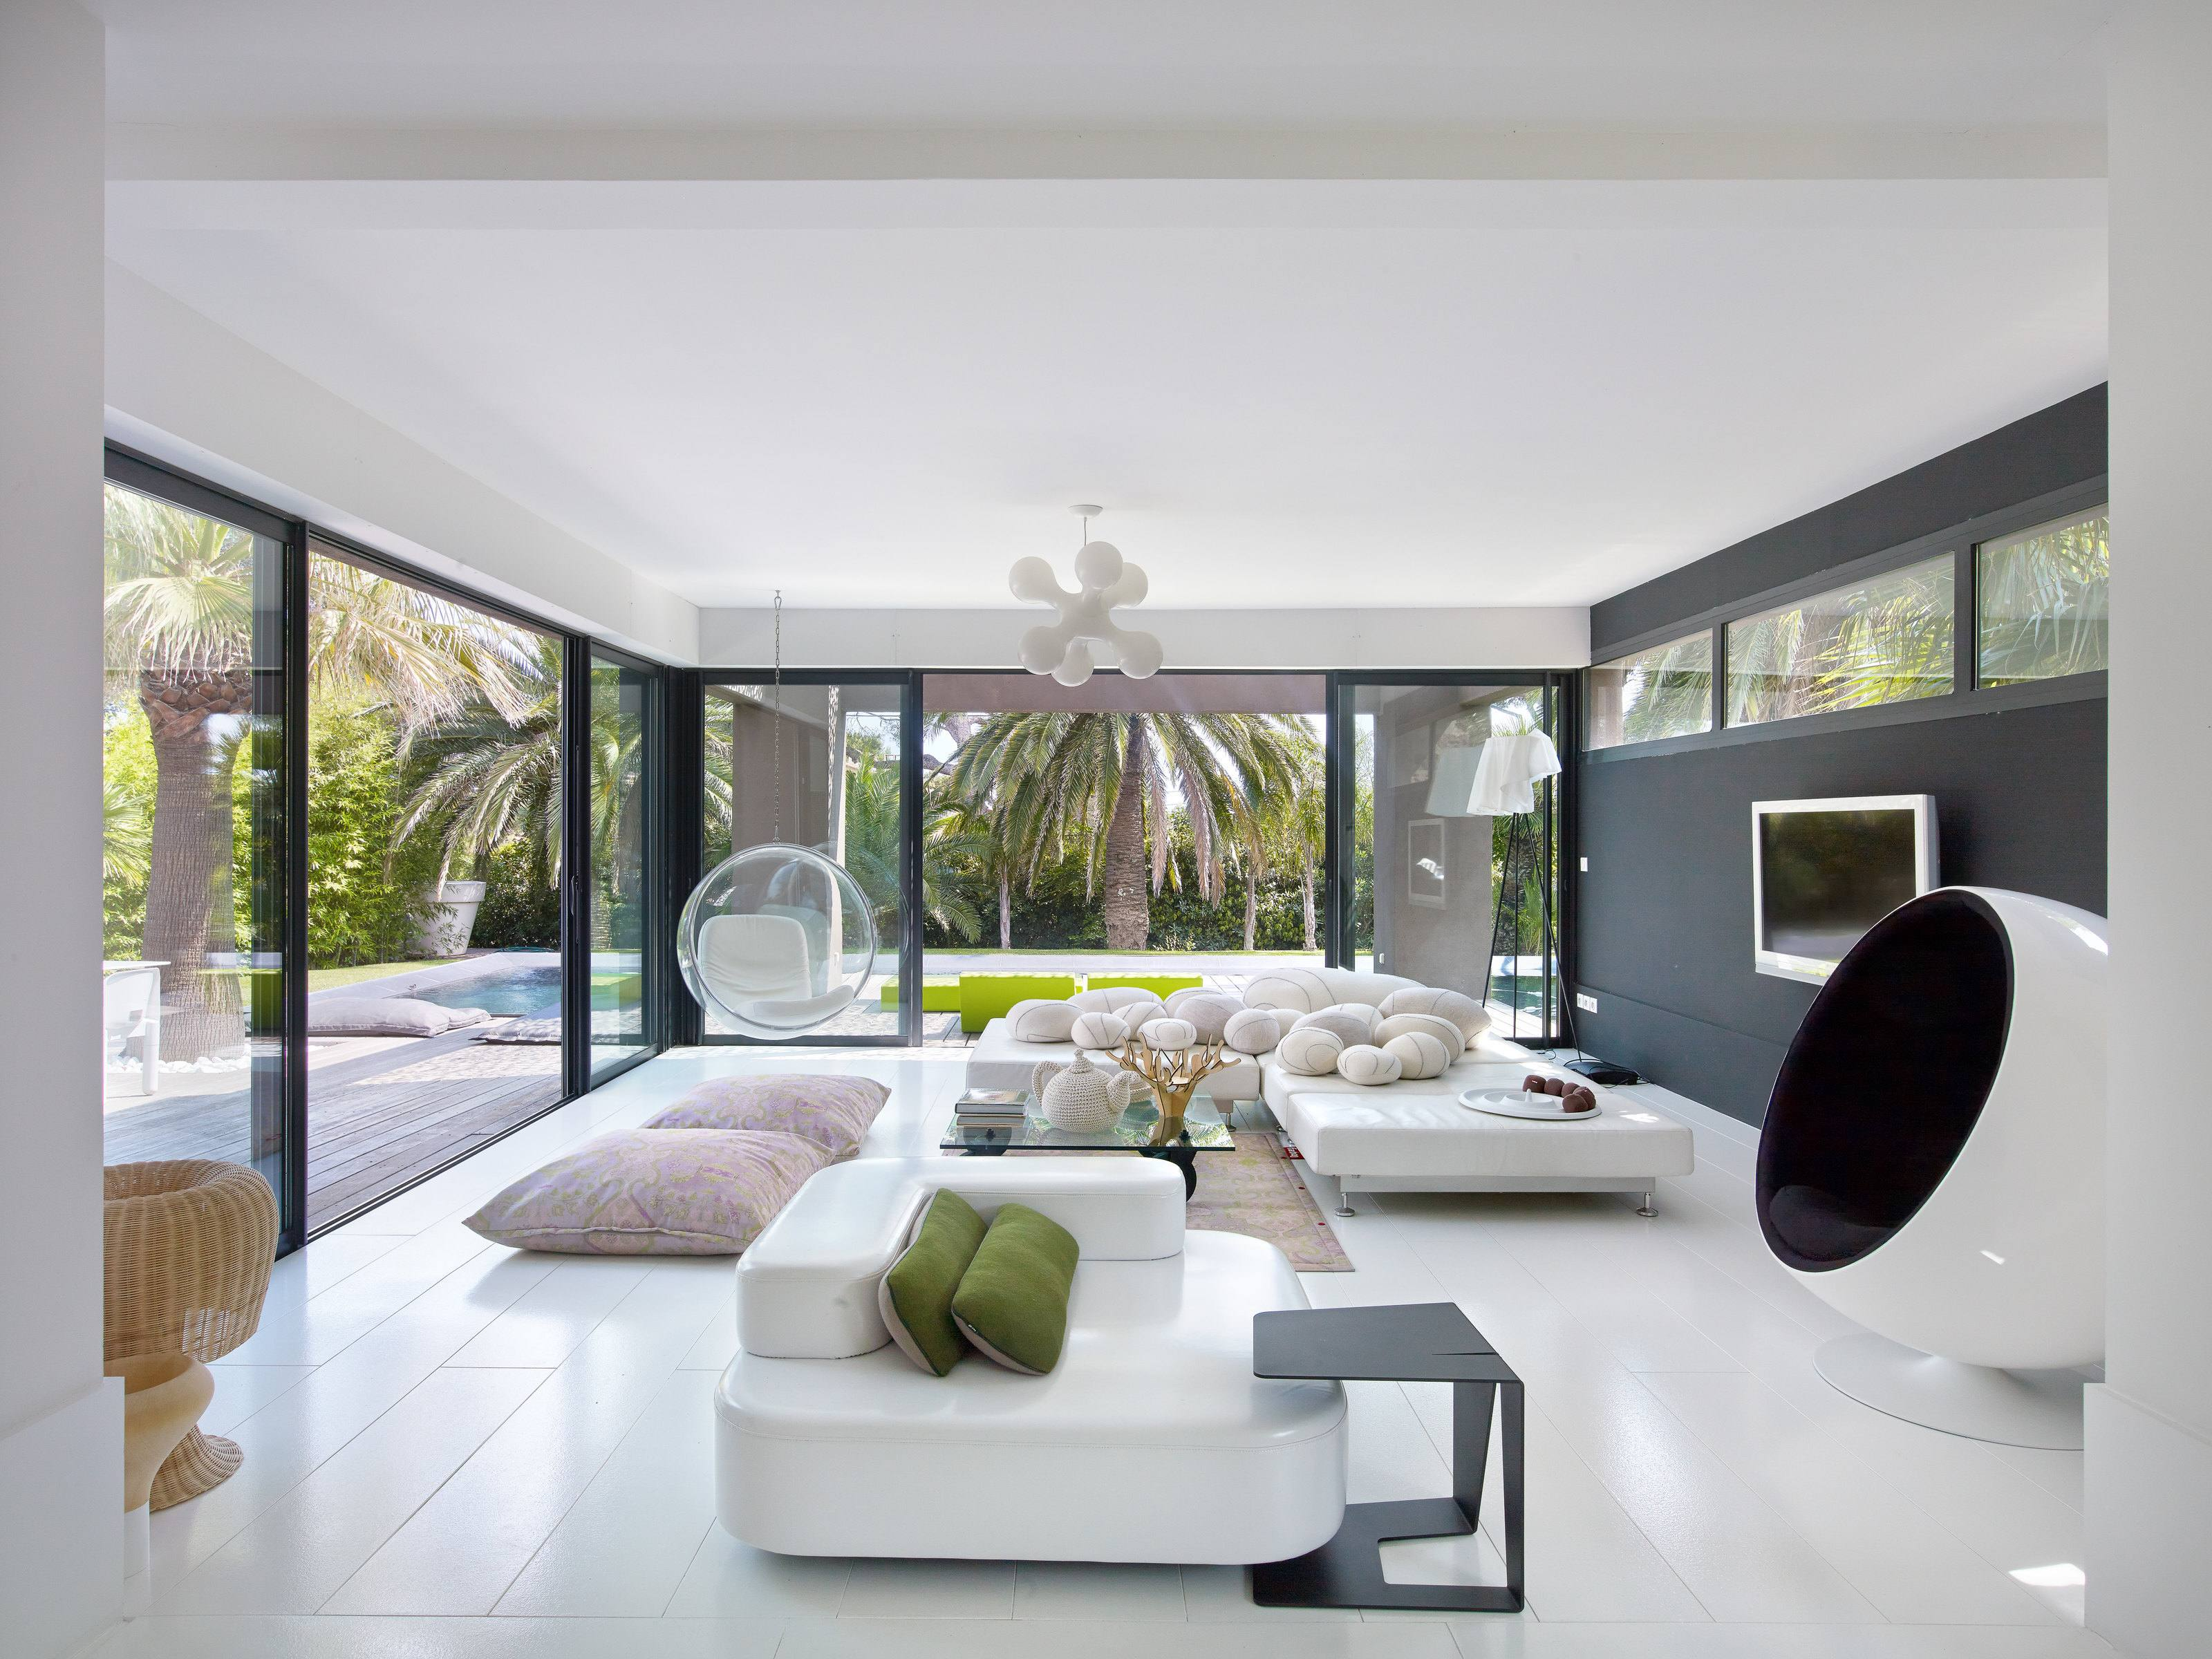 Playfully modern pleasantly colorful beautifully landscaped villa in saint raphael france - Lounge rooms ...